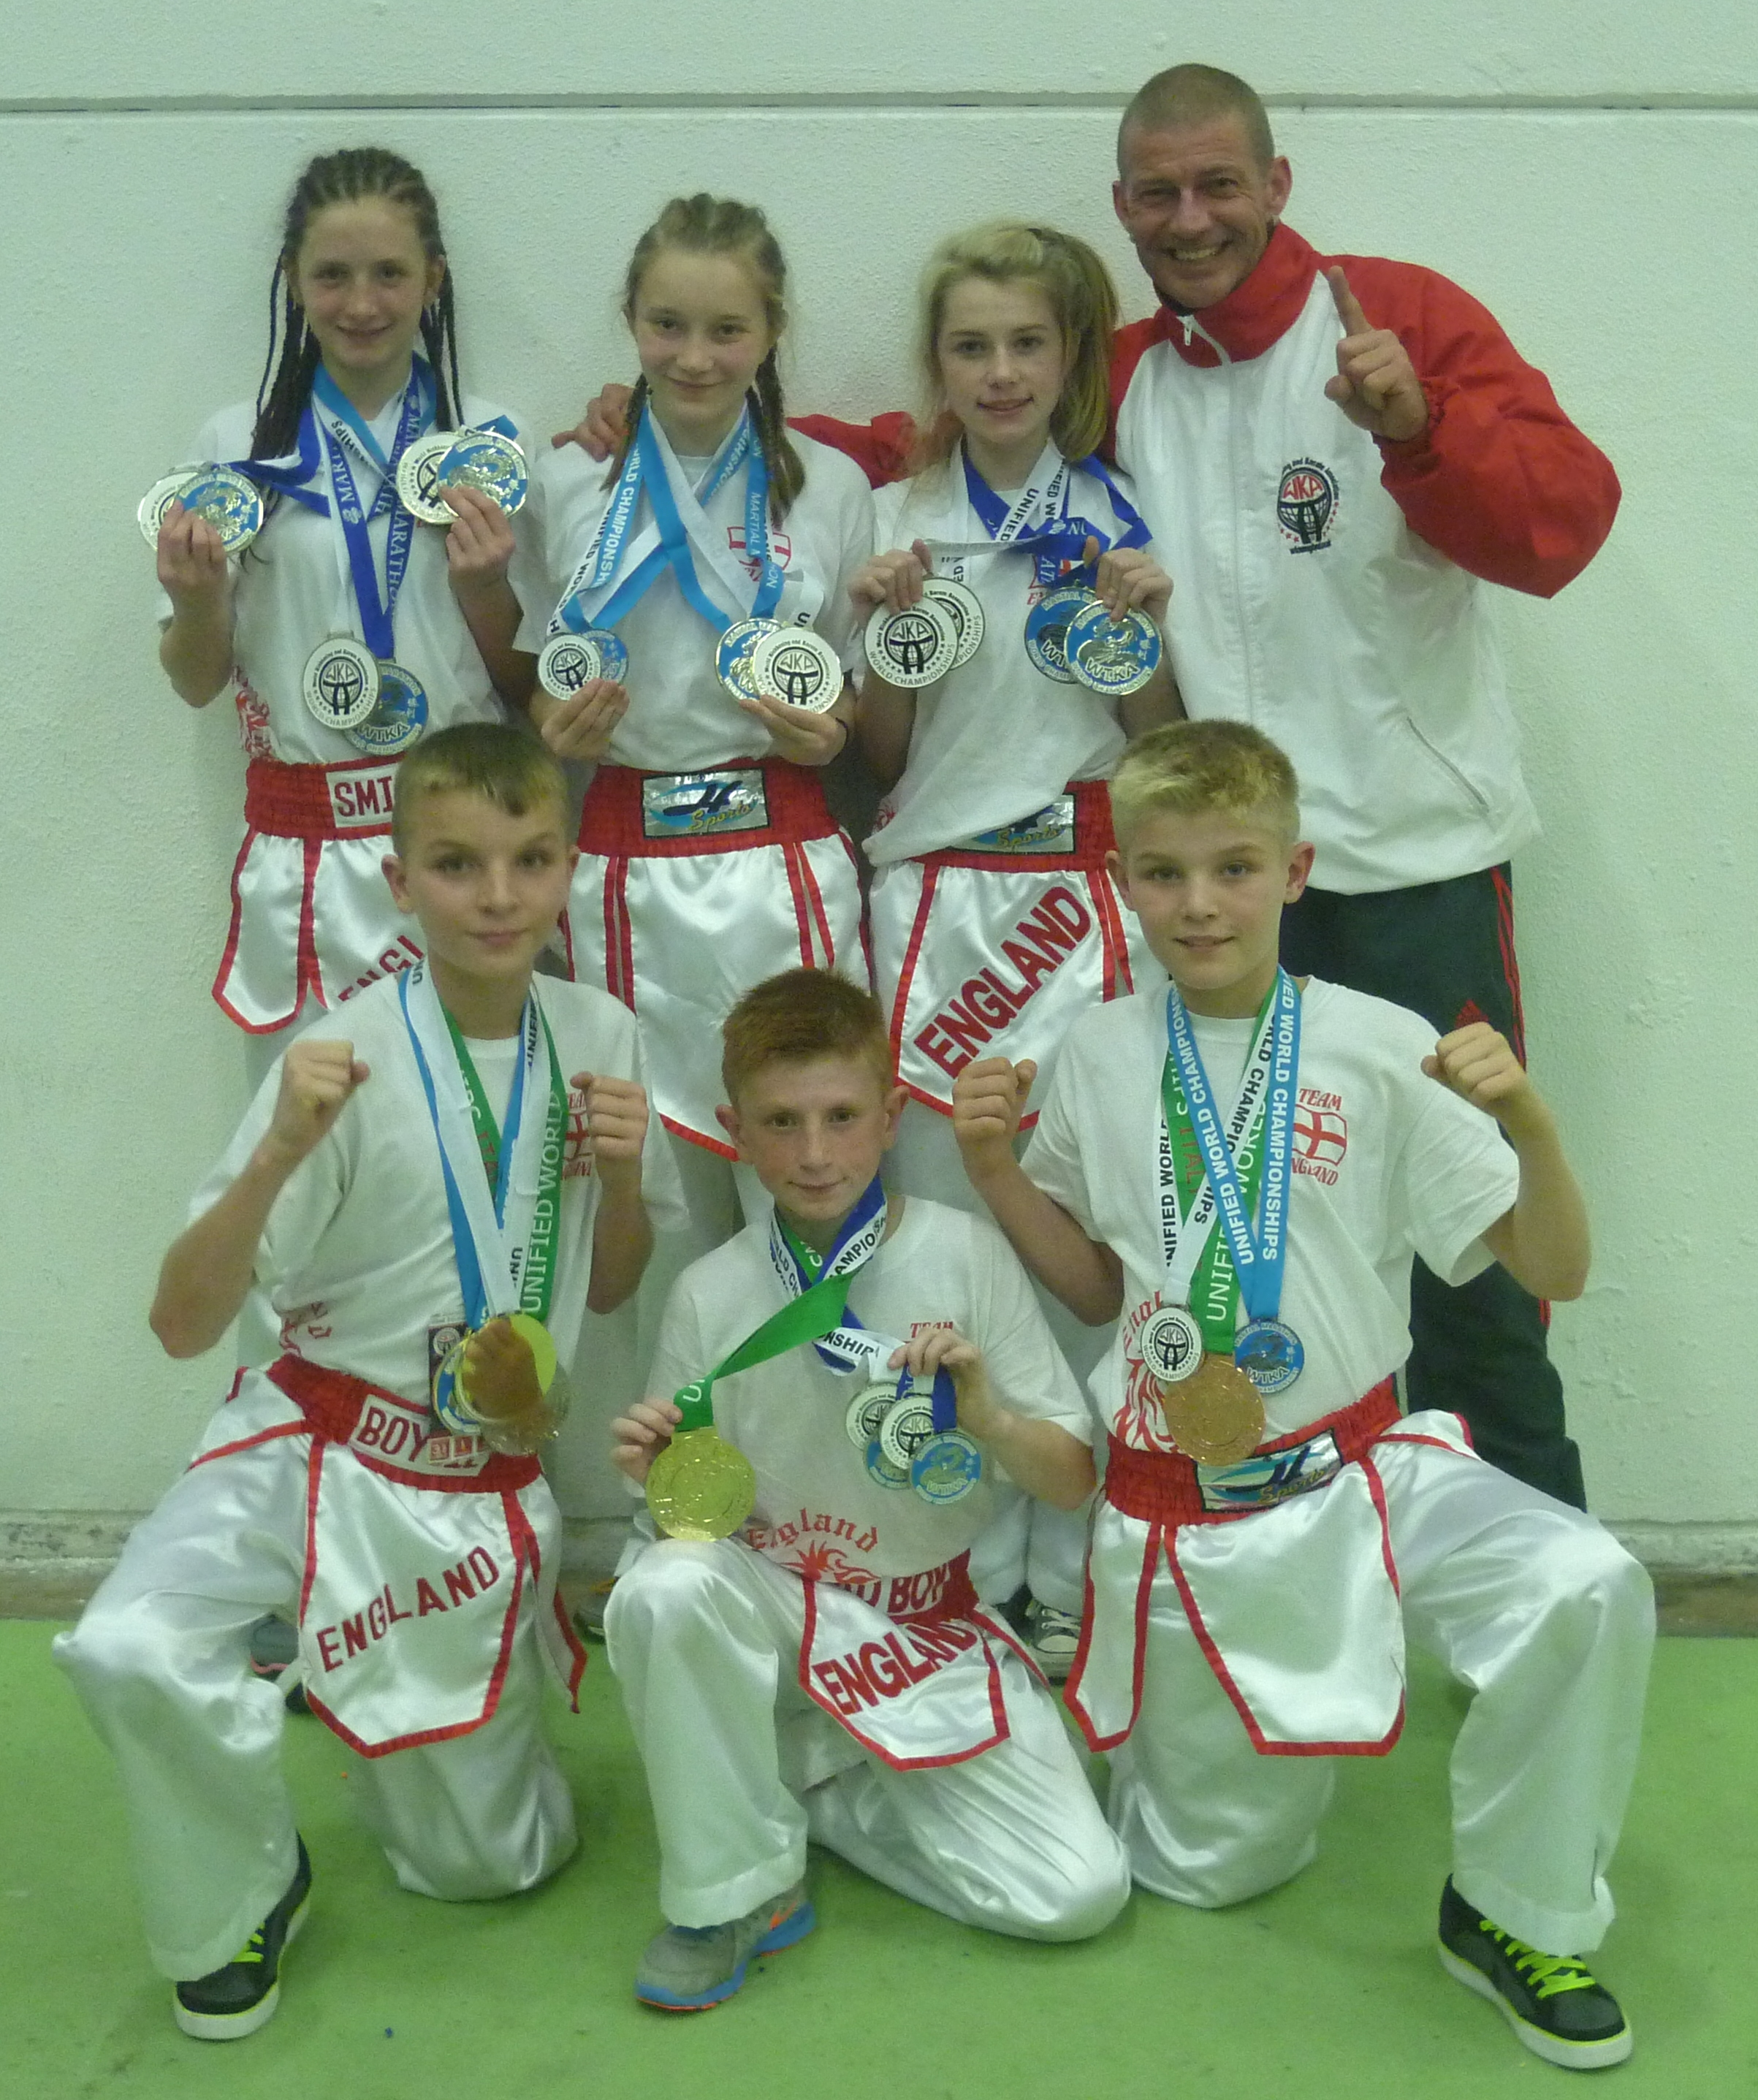 K.9's England reps with their medal haul